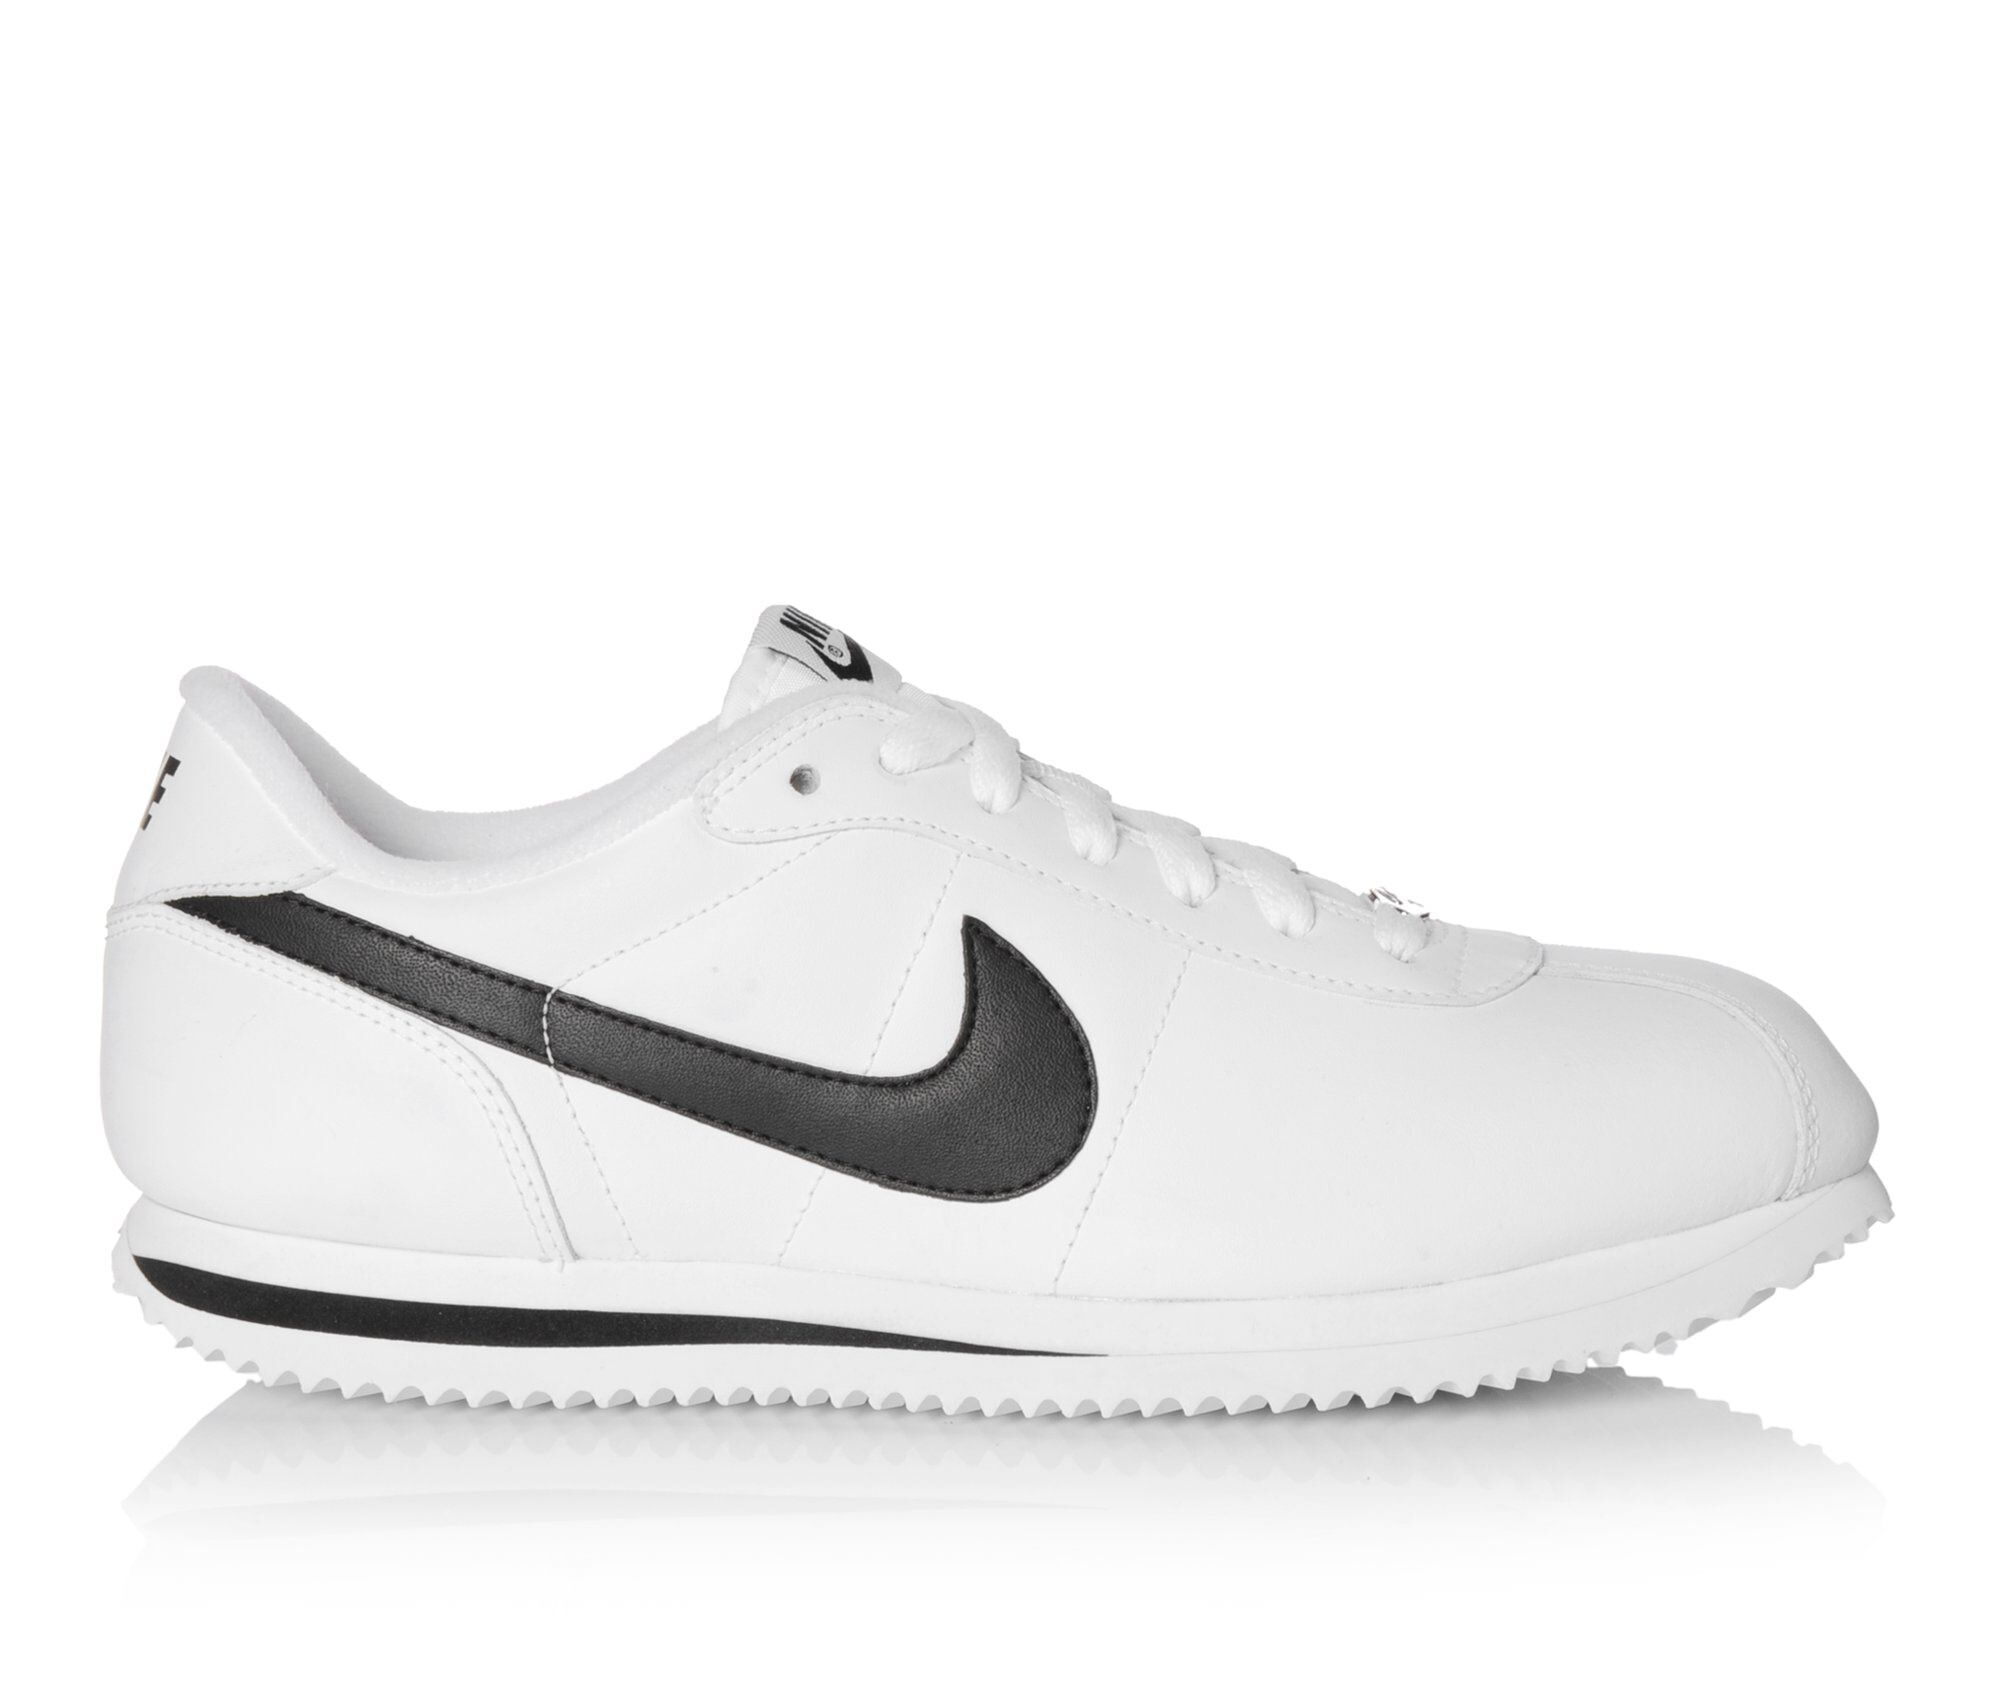 Undersell Men's Nike Cortez Basic Leather Sneakers Wht/Blk/Silv